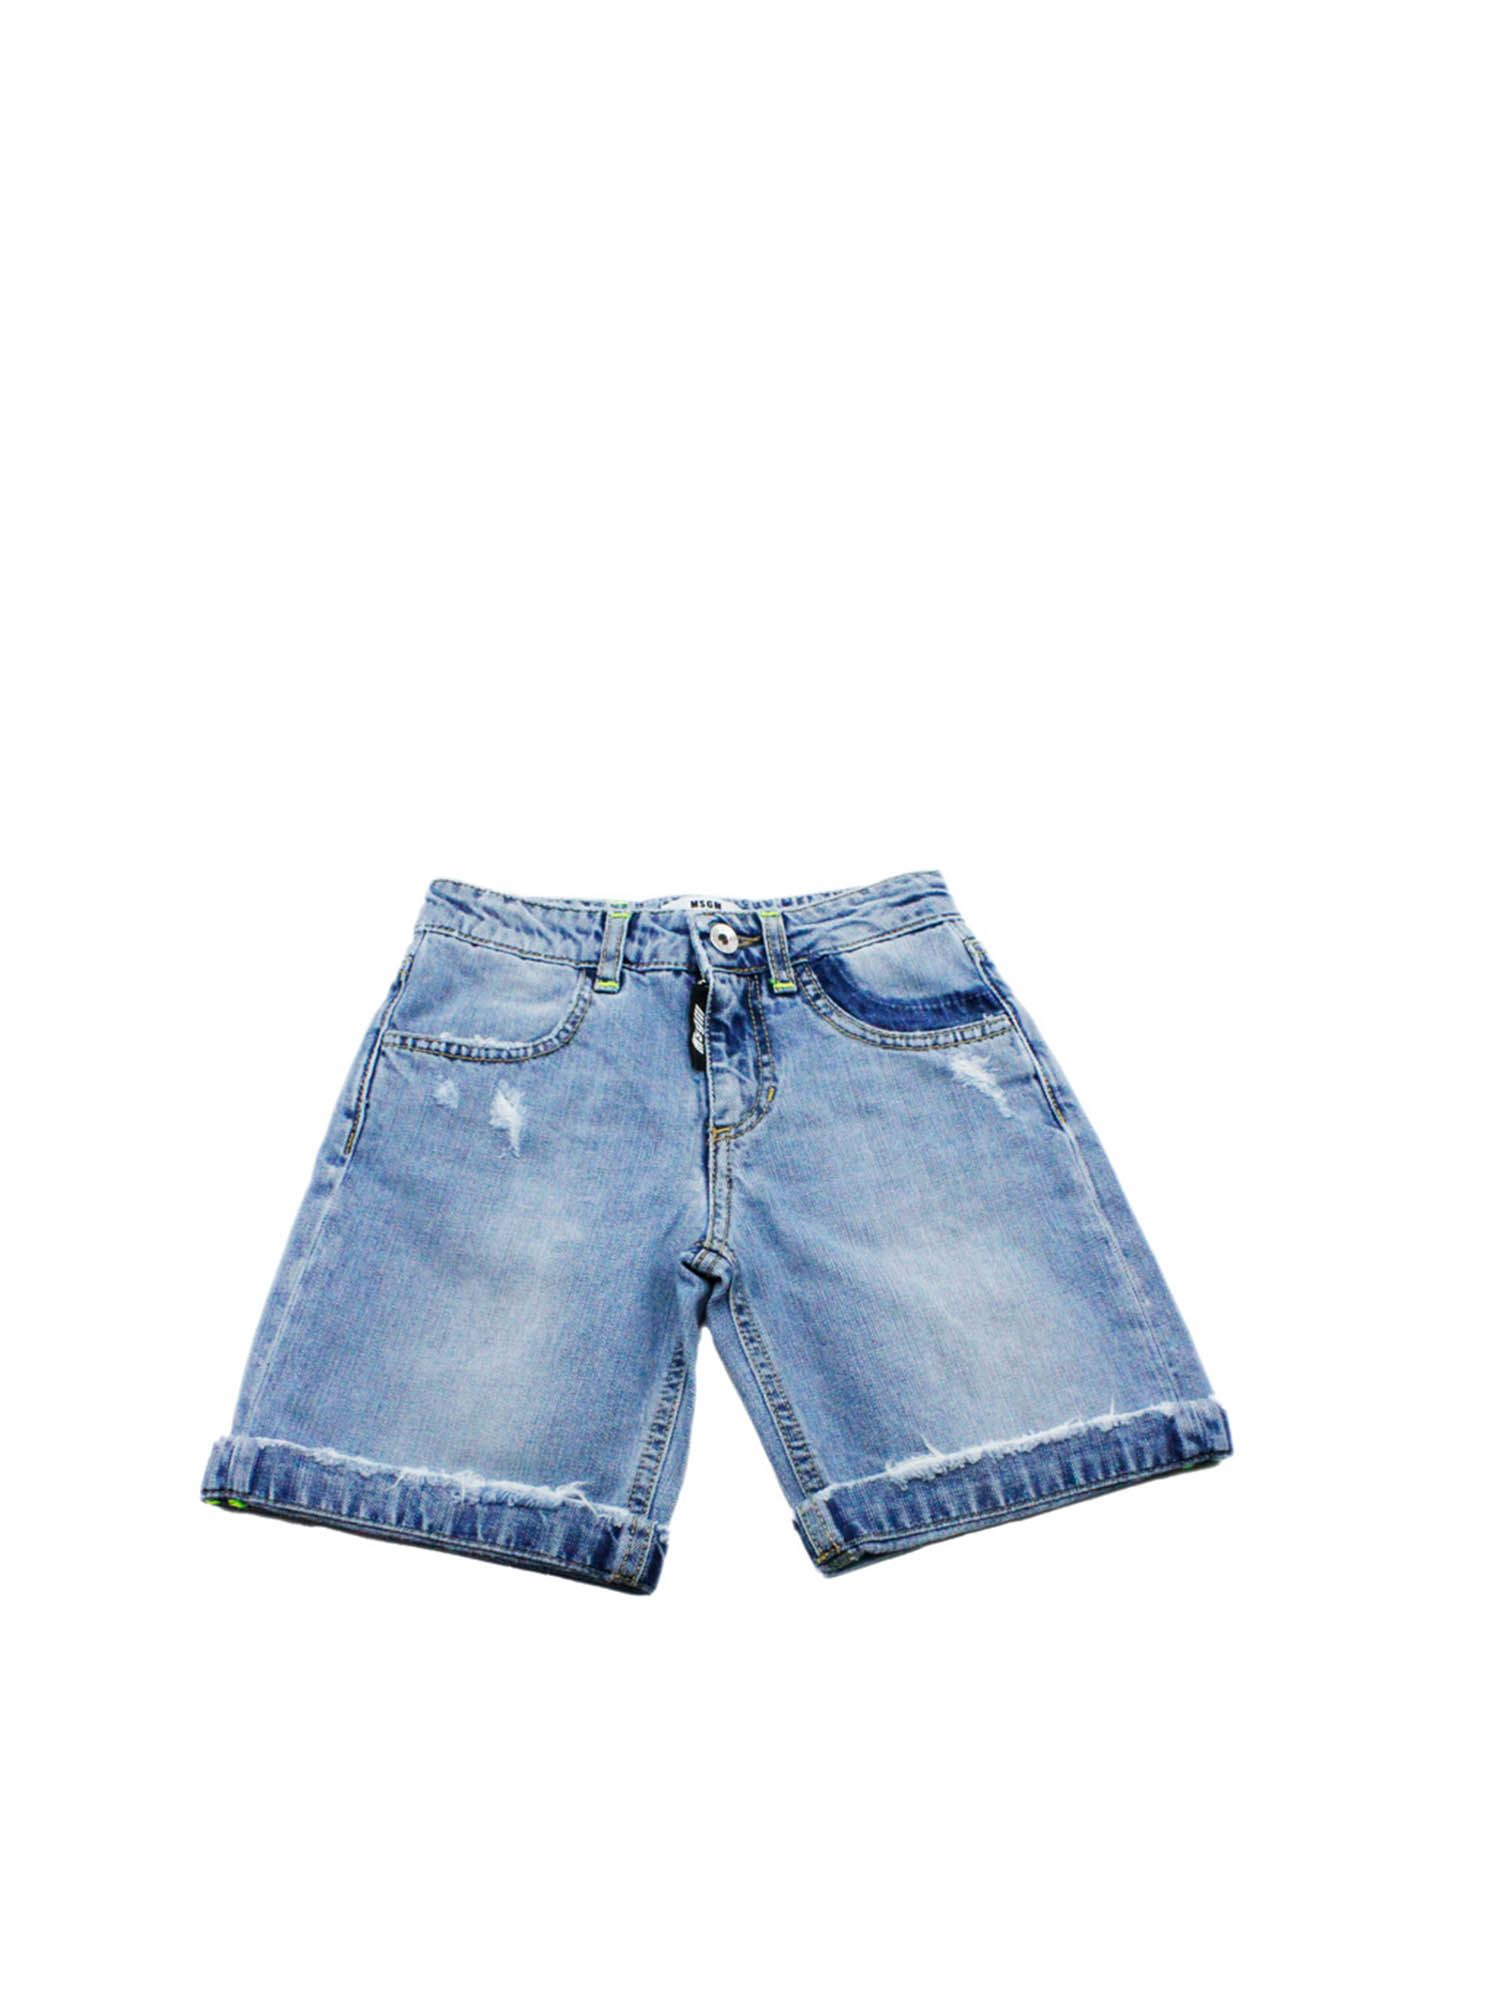 Msgm WORN-EFFECT DENIM SHORTS IN LIGHT BLUE